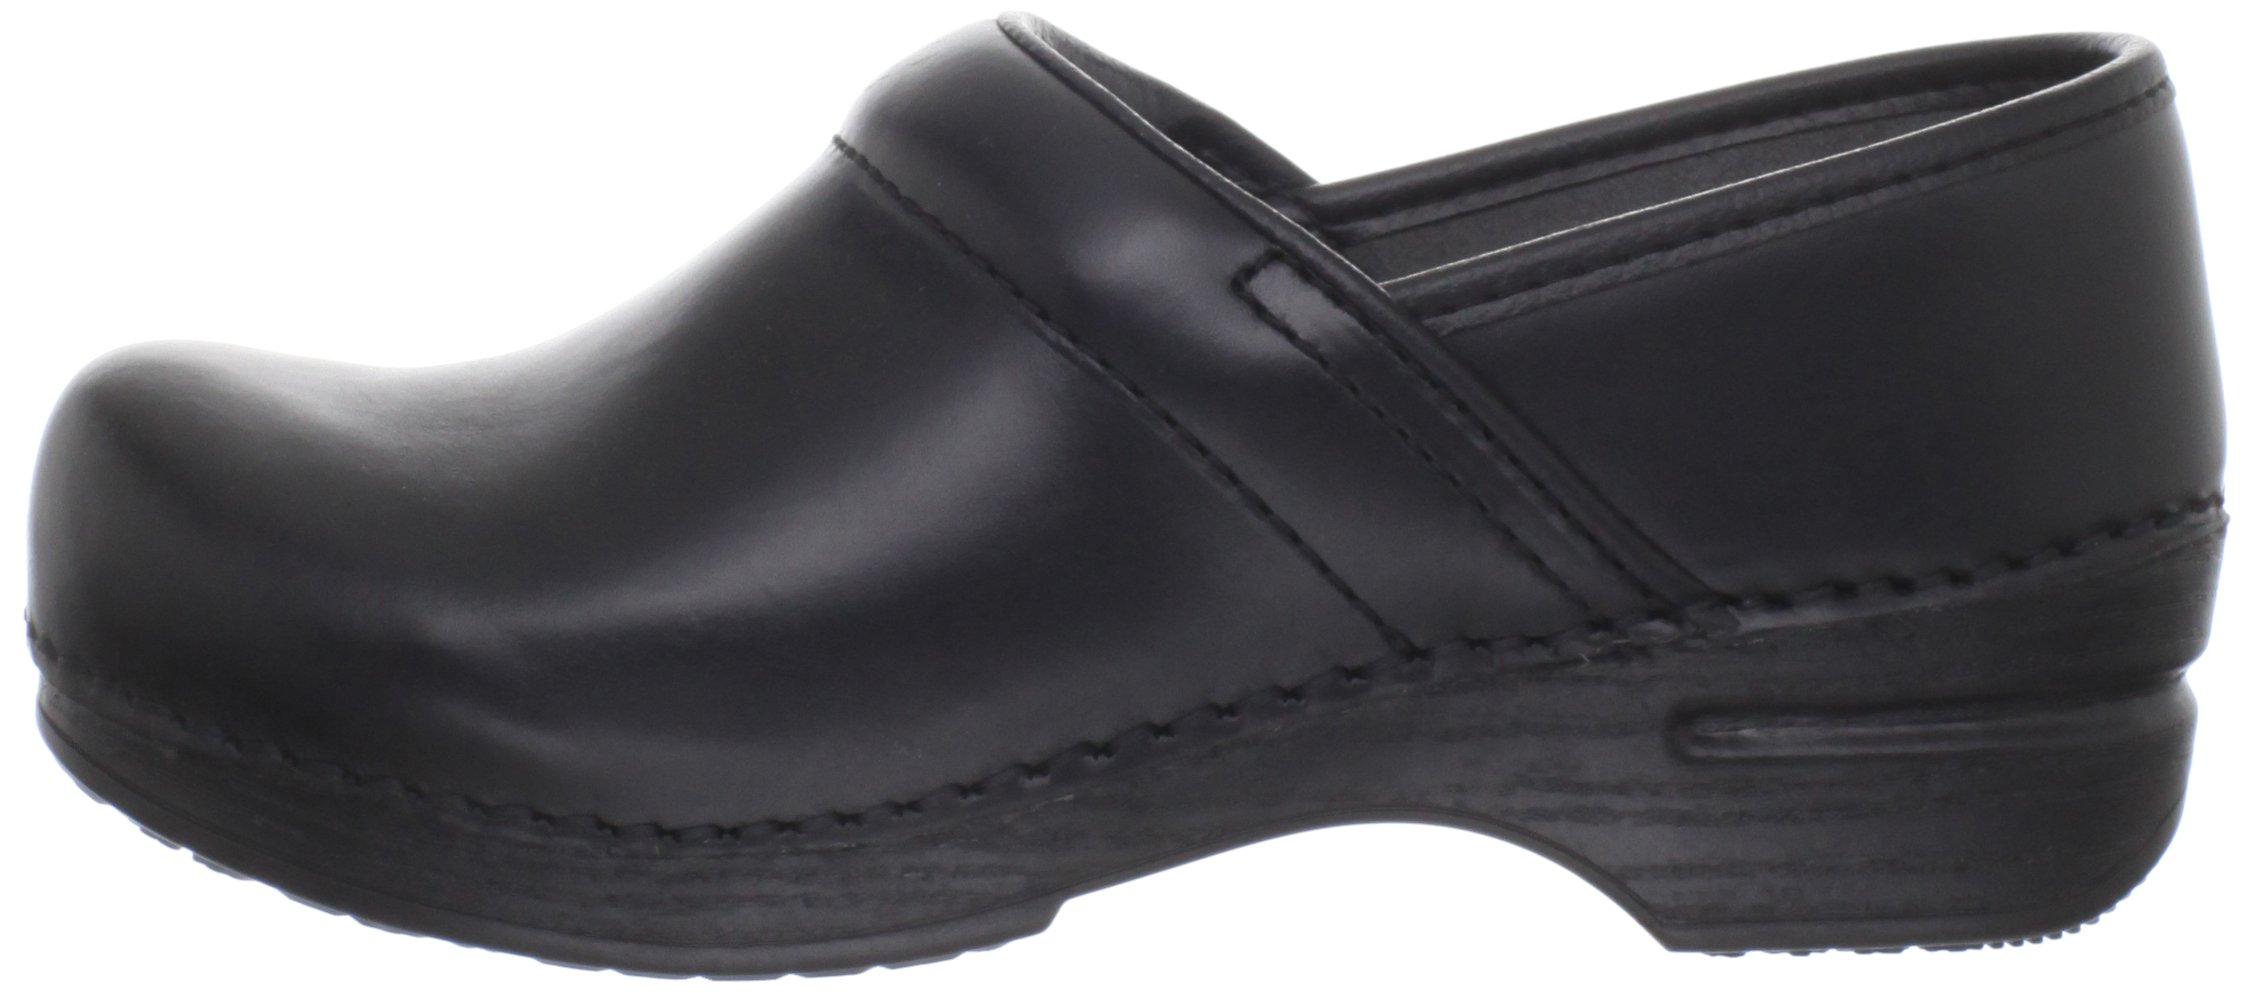 Dansko Women's Pro XP Clog,Ebony,35 EU/4.5-5 M US by Dansko (Image #5)